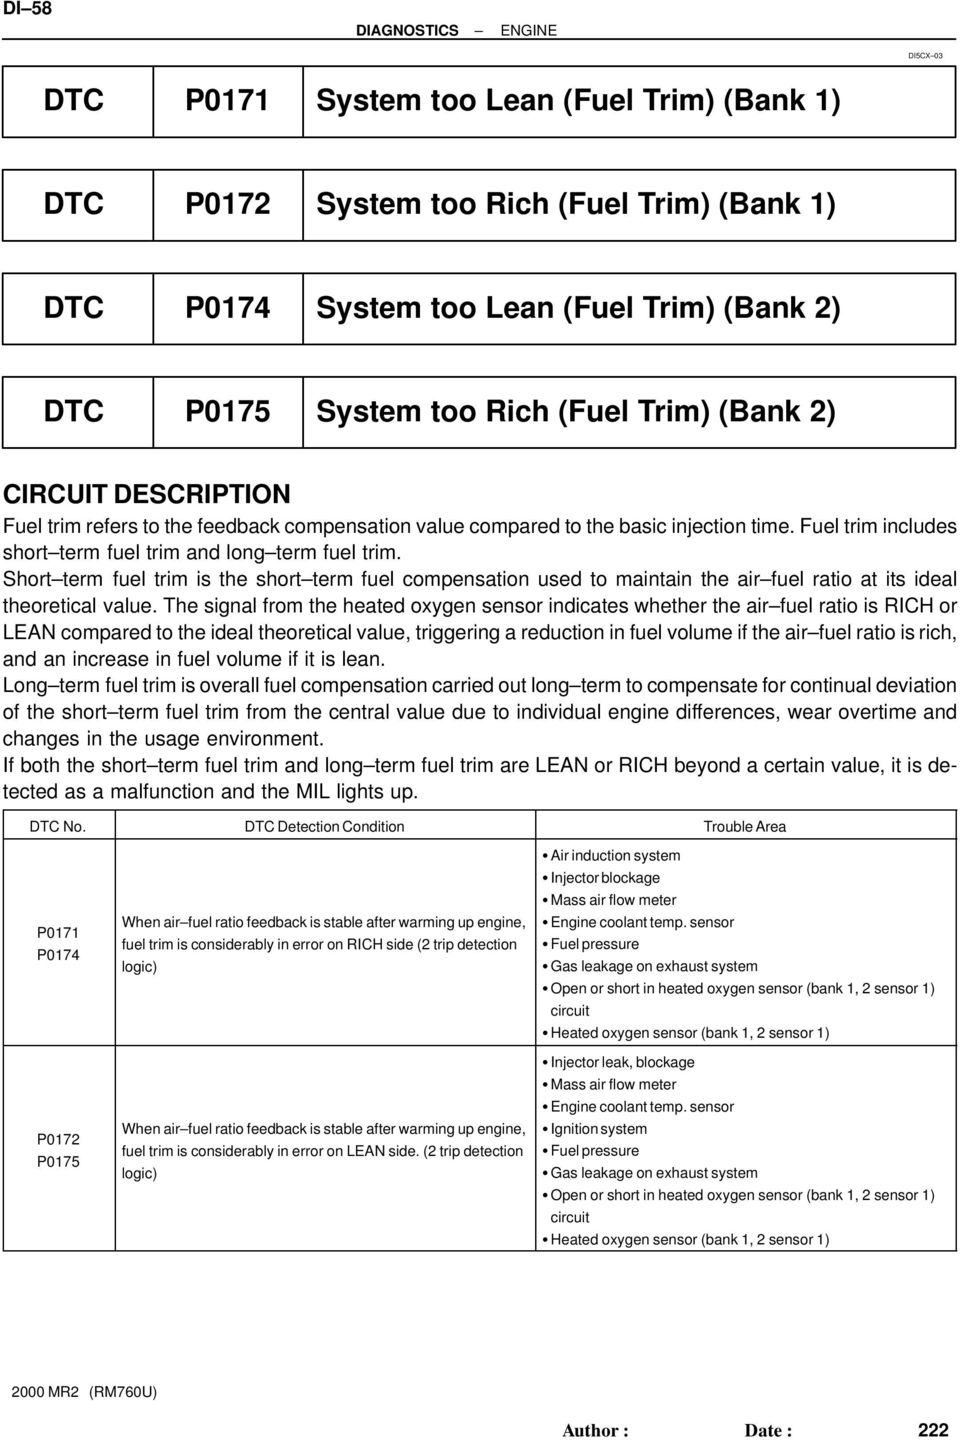 DTC P0171 System too Lean (Fuel Trim) (Bank 1) DTC P0172 System too